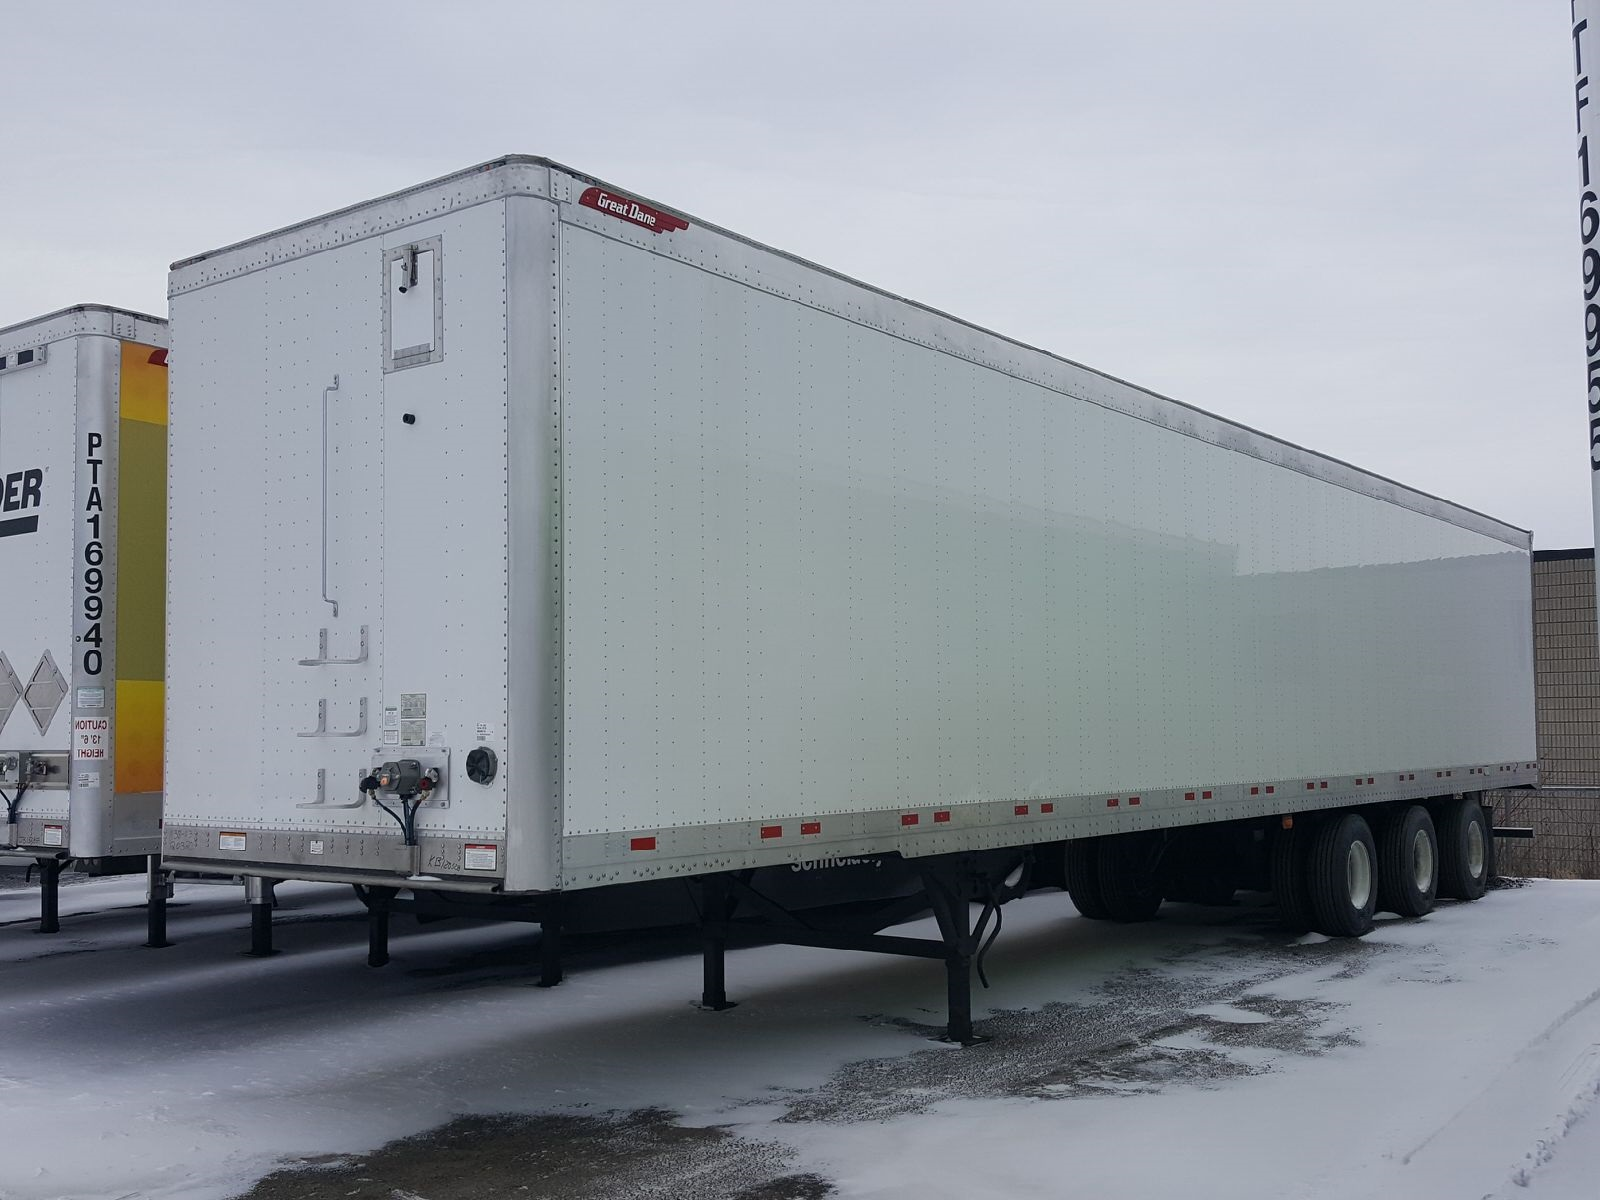 2021 GREAT DANE CHAMPION CS1 LOGISTIC TRIDEM SWING DOOR VAN TRAILERS